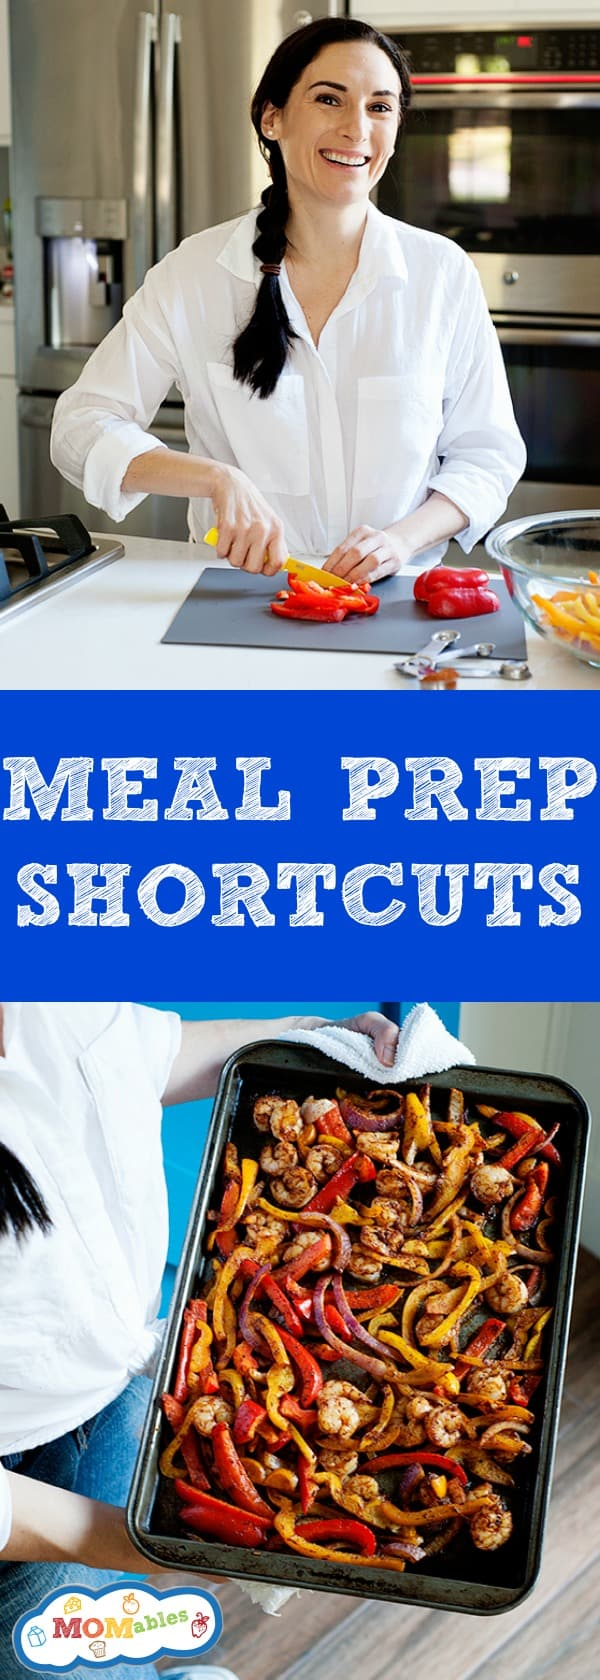 Meal Prep shortcuts to help you make meals faster